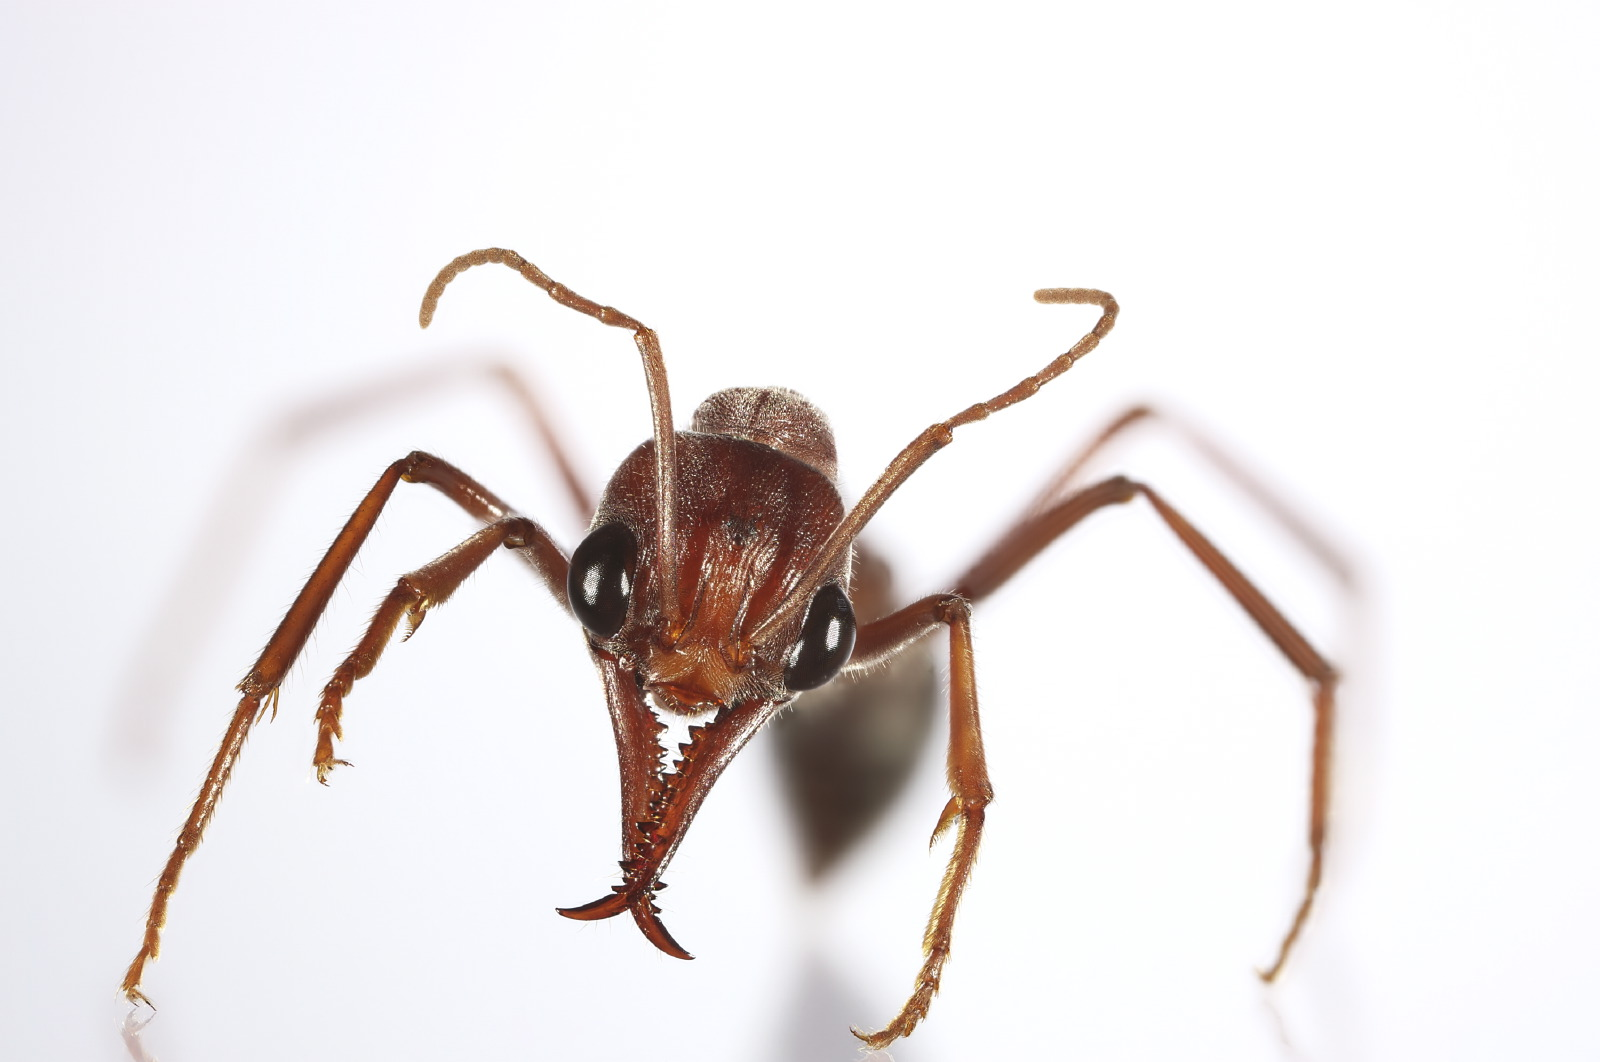 Myrmecia ant full body